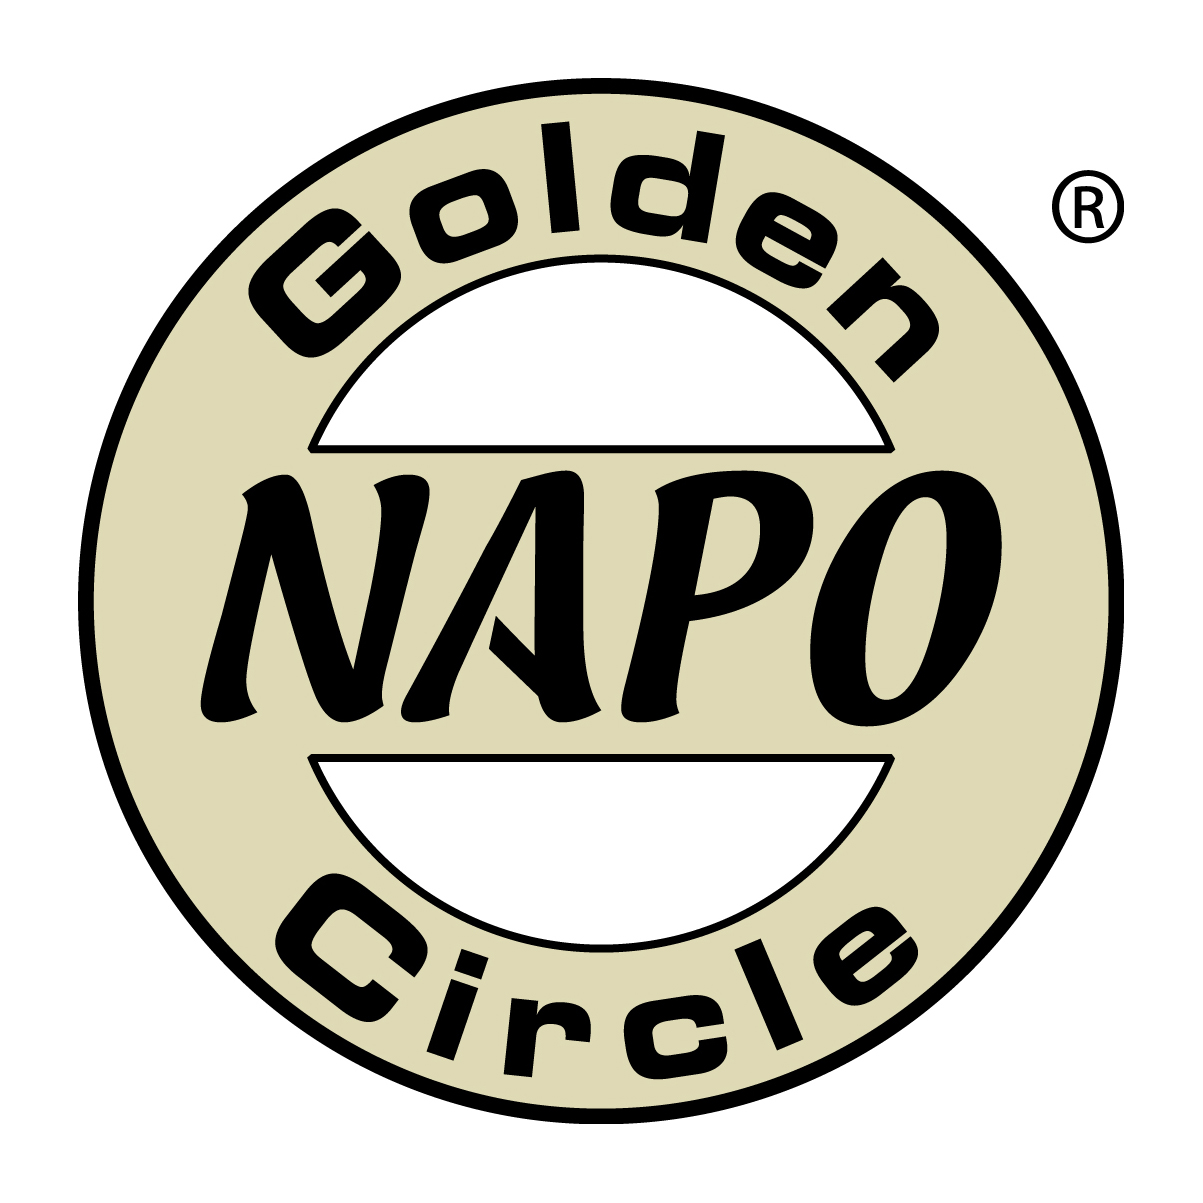 napo-golden-circle-weekend-retreat.jpg